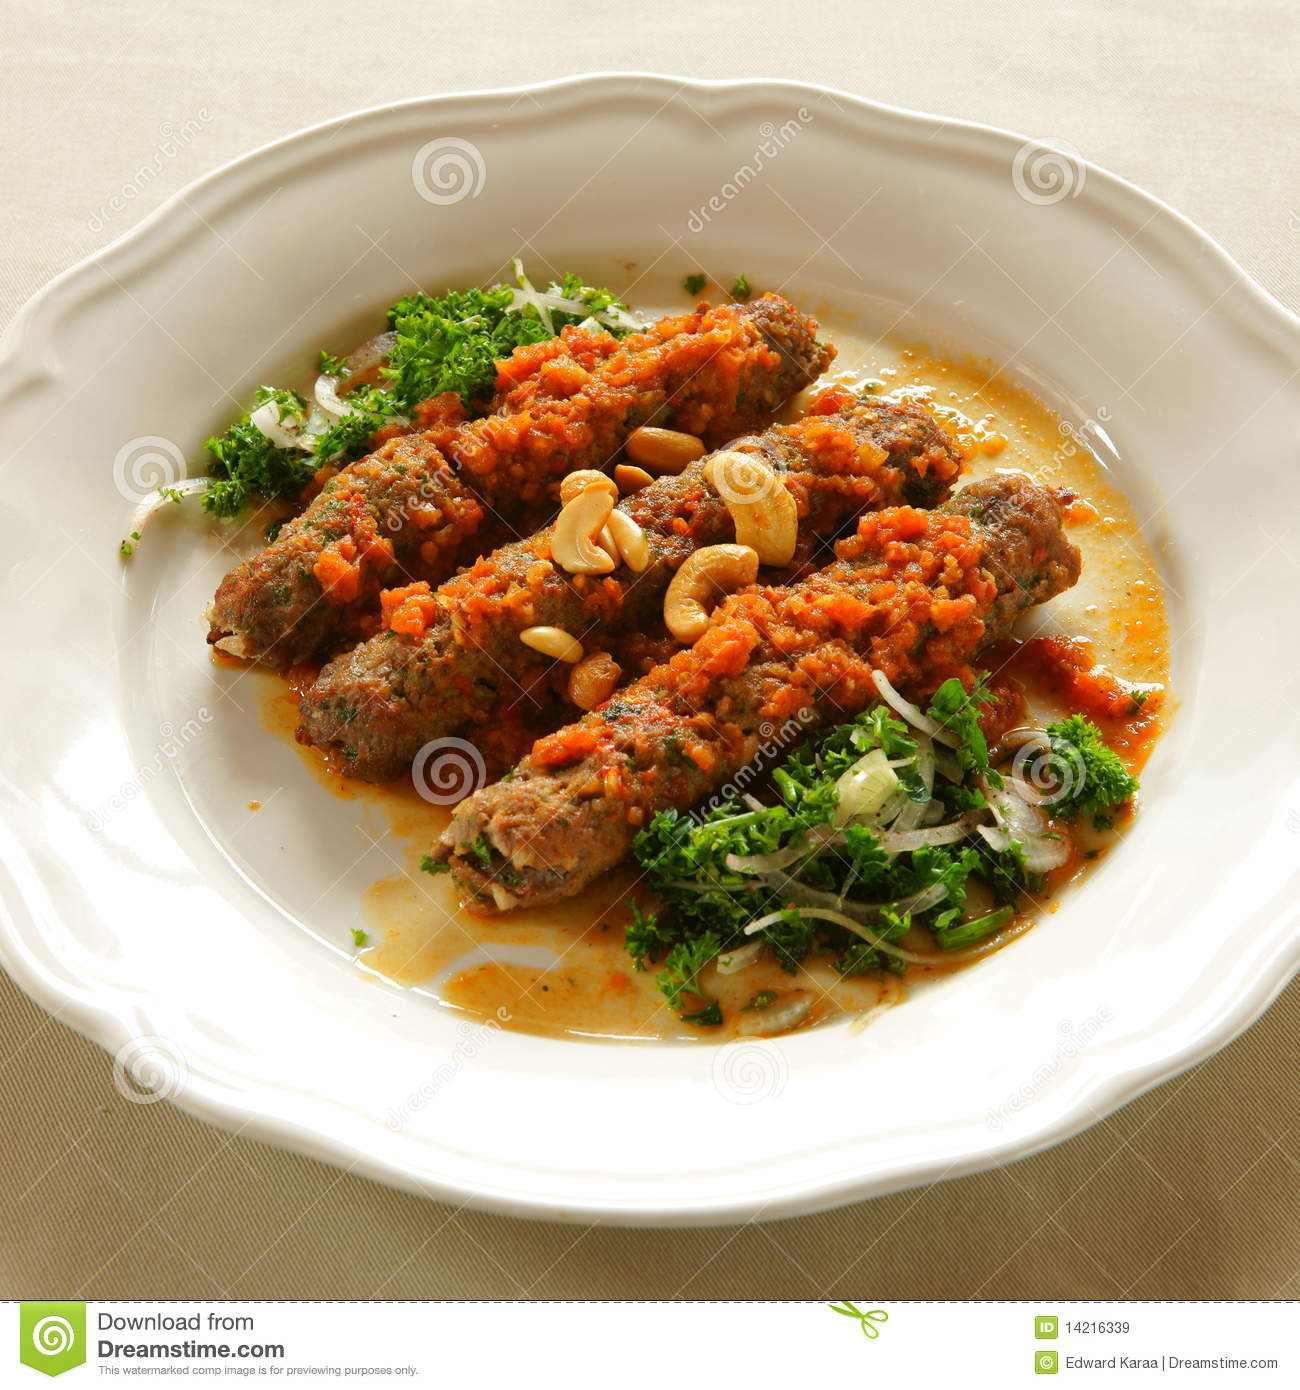 Shish kebab lebanese cuisine royalty free stock images for About lebanese cuisine